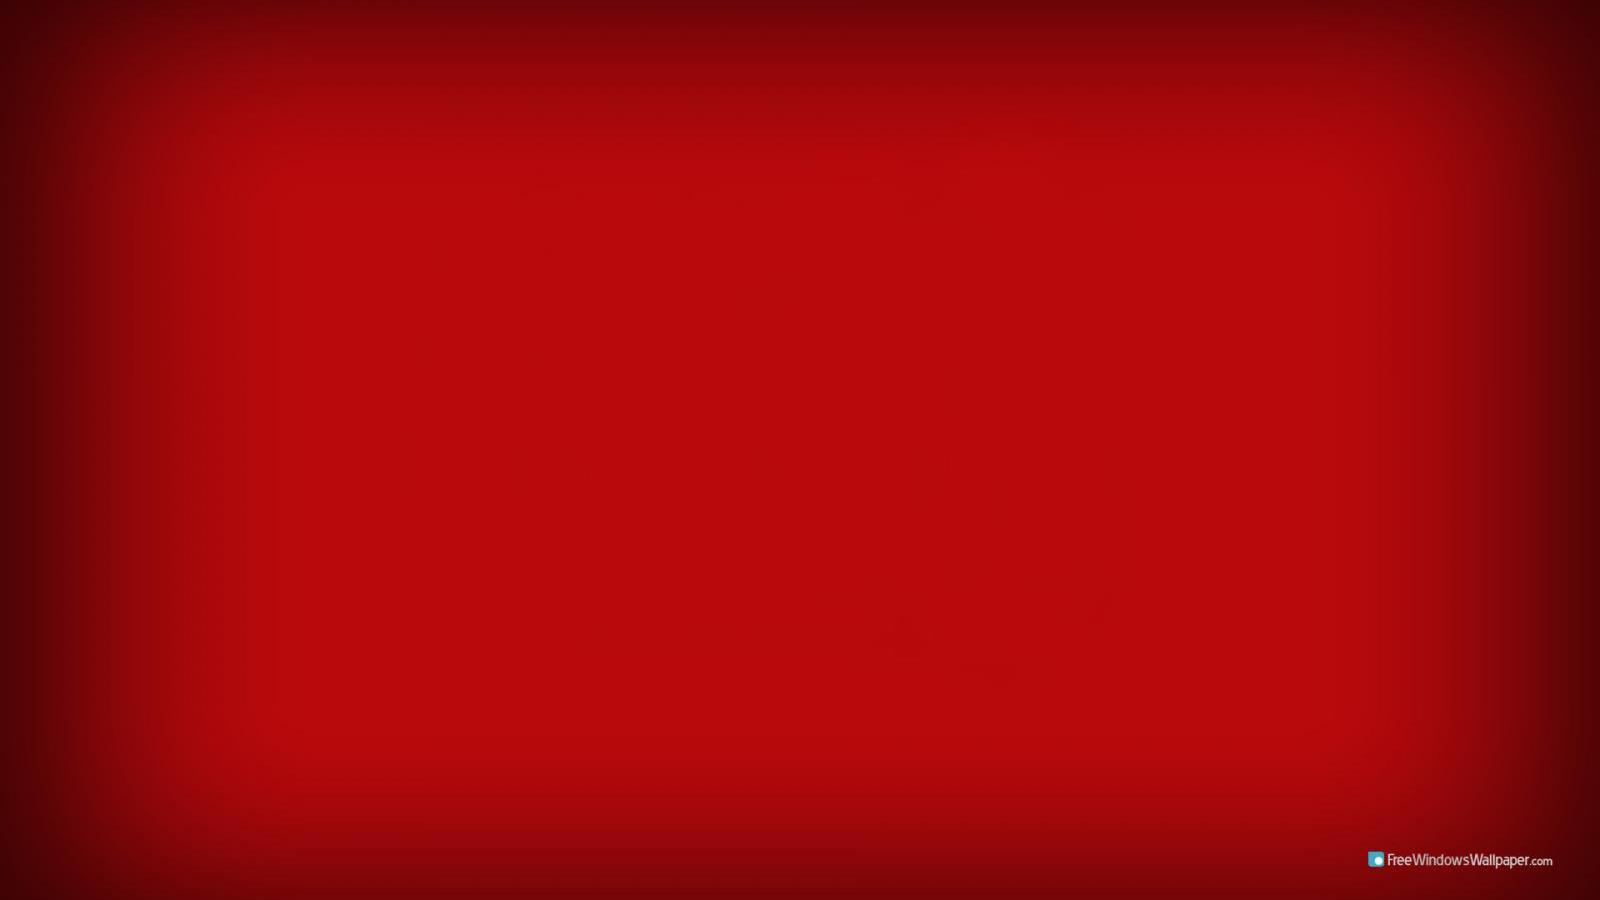 1600x900 Red Computer Wallpaper Solid Red Wallpaper 1600x900